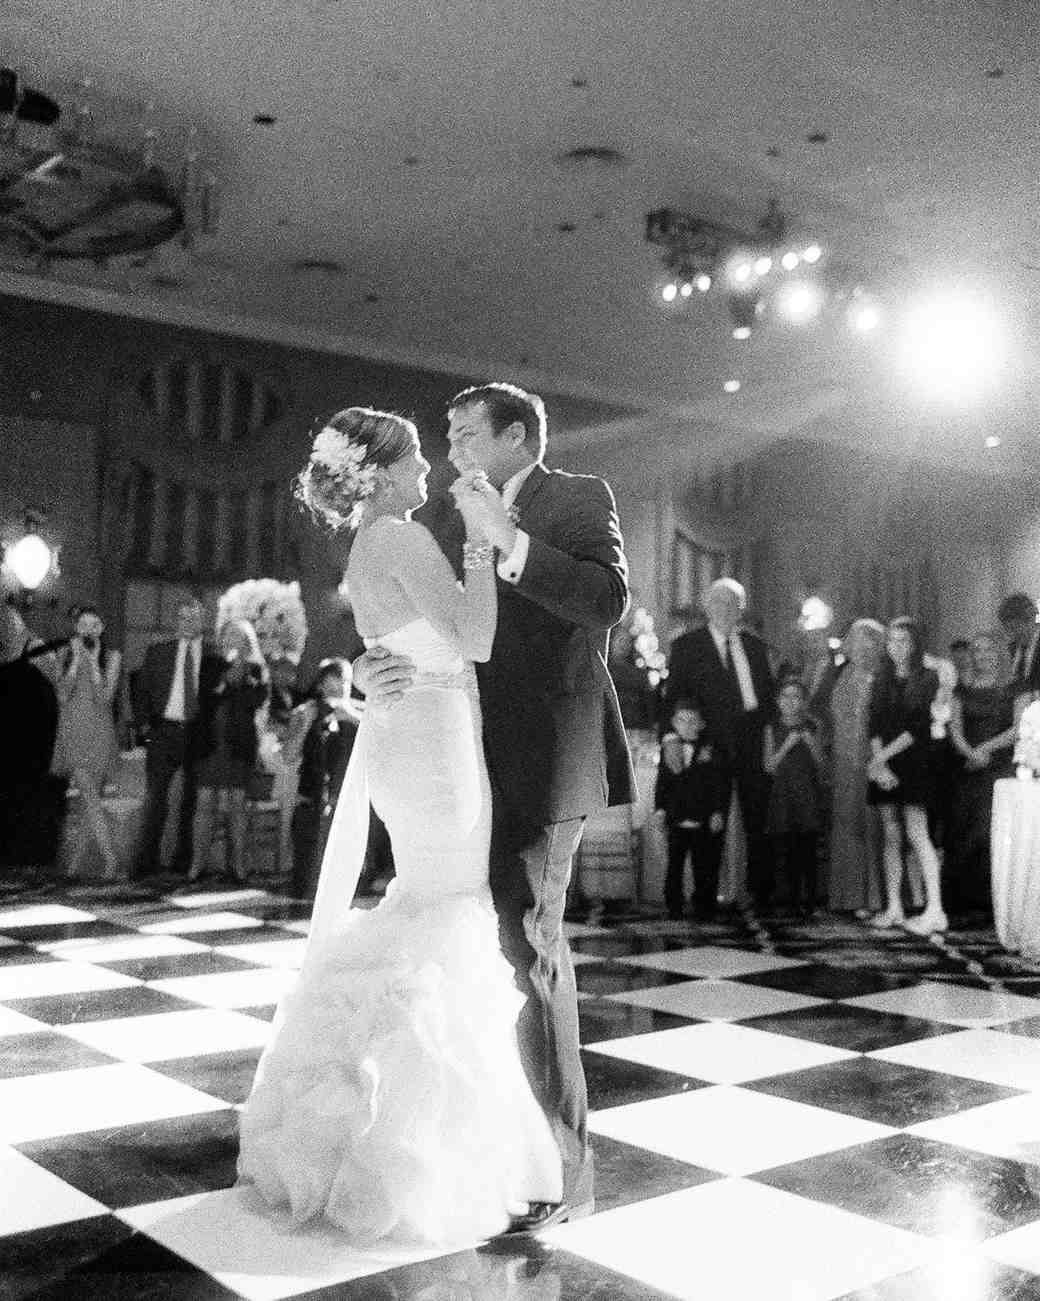 paige-michael-wedding-firstdance-1019-s112431-1215.jpg